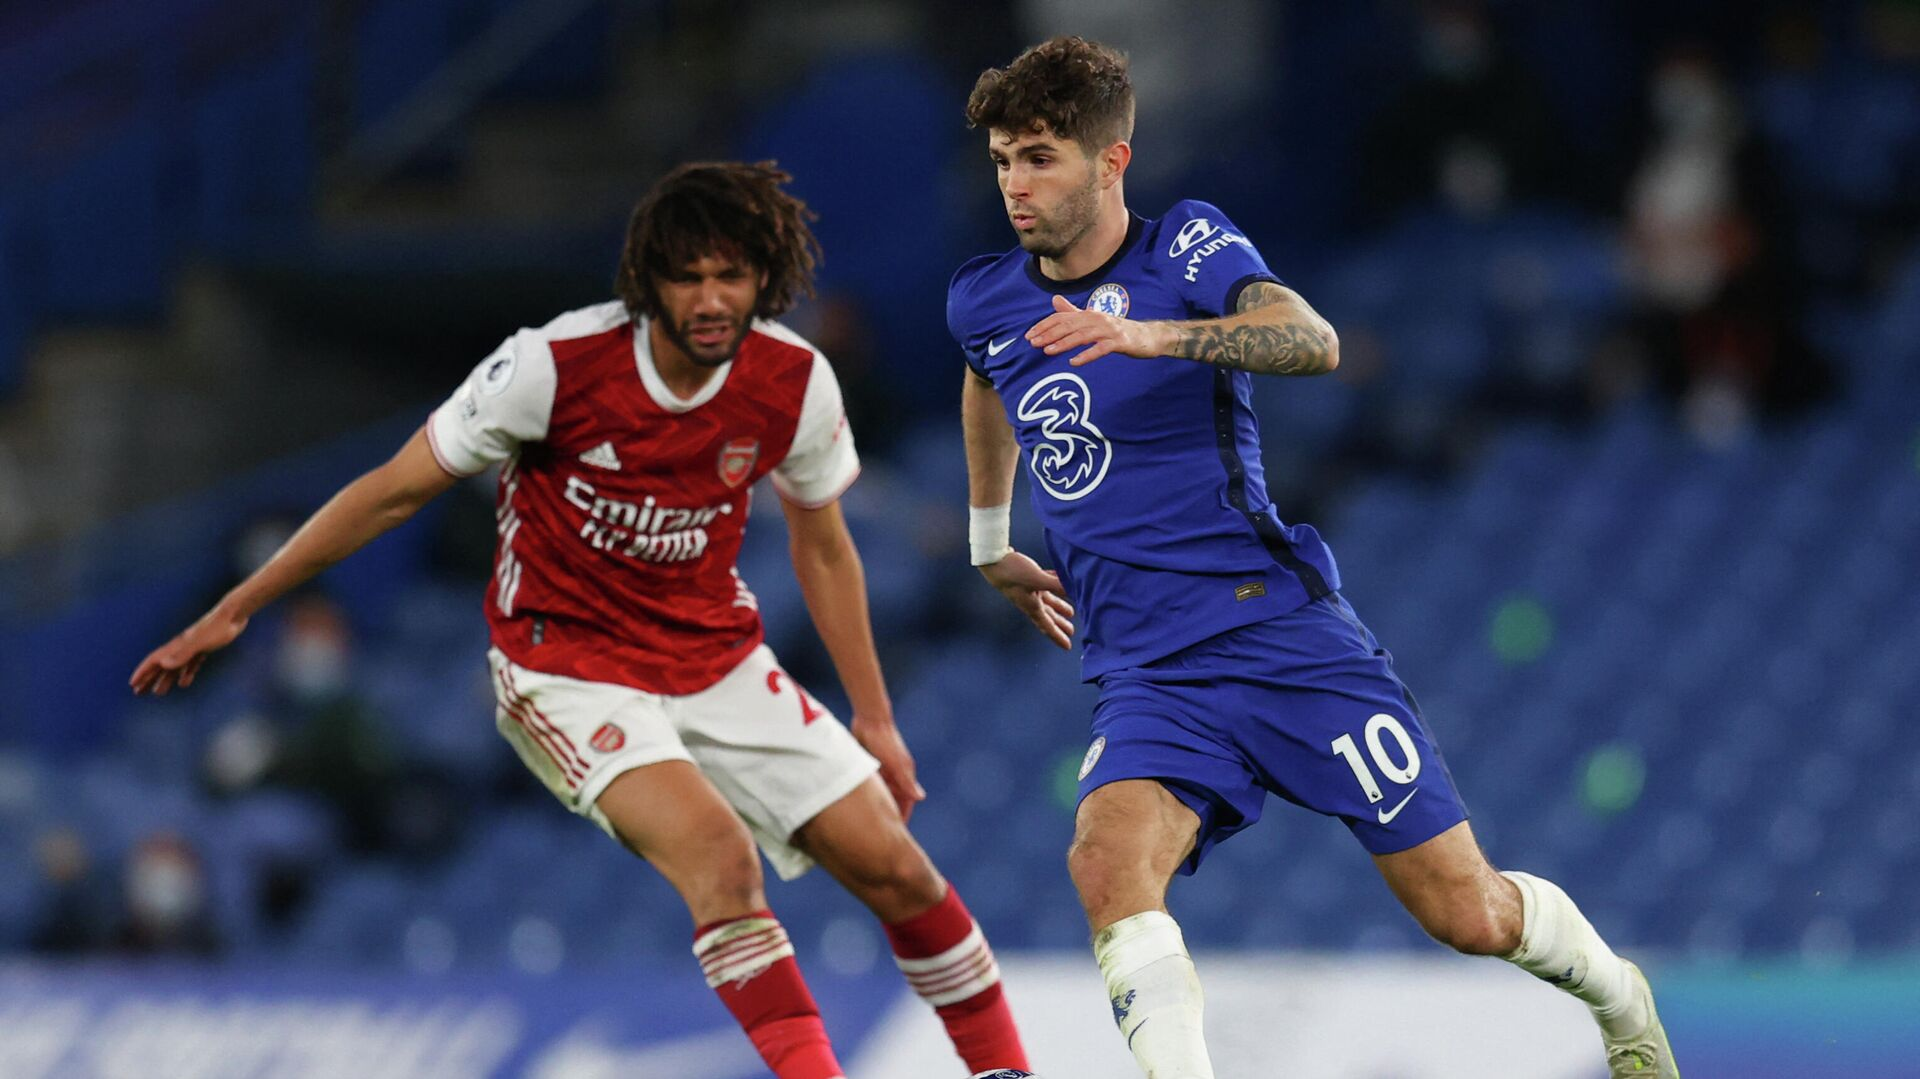 Arsenal's Egyptian midfielder Mohamed Elneny (L) vies with Chelsea's US midfielder Christian Pulisic during the English Premier League football match between Chelsea and Arsenal at Stamford Bridge in London on May 12, 2021. (Photo by Catherine Ivill / POOL / AFP) / RESTRICTED TO EDITORIAL USE. No use with unauthorized audio, video, data, fixture lists, club/league logos or 'live' services. Online in-match use limited to 120 images. An additional 40 images may be used in extra time. No video emulation. Social media in-match use limited to 120 images. An additional 40 images may be used in extra time. No use in betting publications, games or single club/league/player publications. /  - РИА Новости, 1920, 13.05.2021